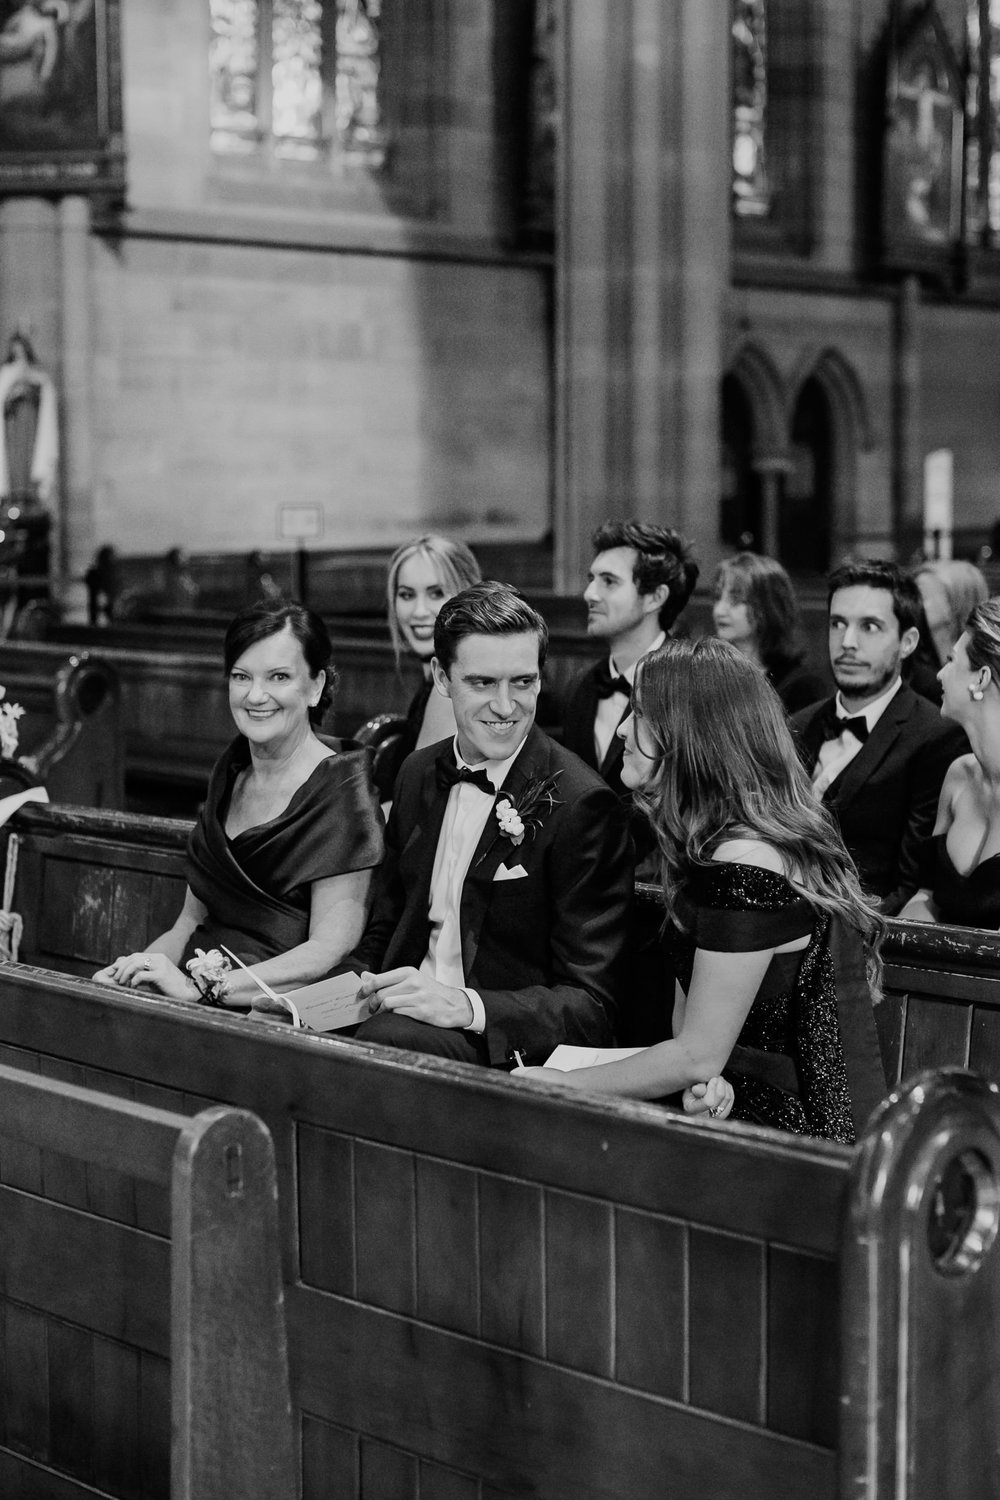 justinaaronphotographer_the_old_clare_kensignton_street_social_st_andrews_cathedral_sydney_alana_chris_b-001-073.jpg